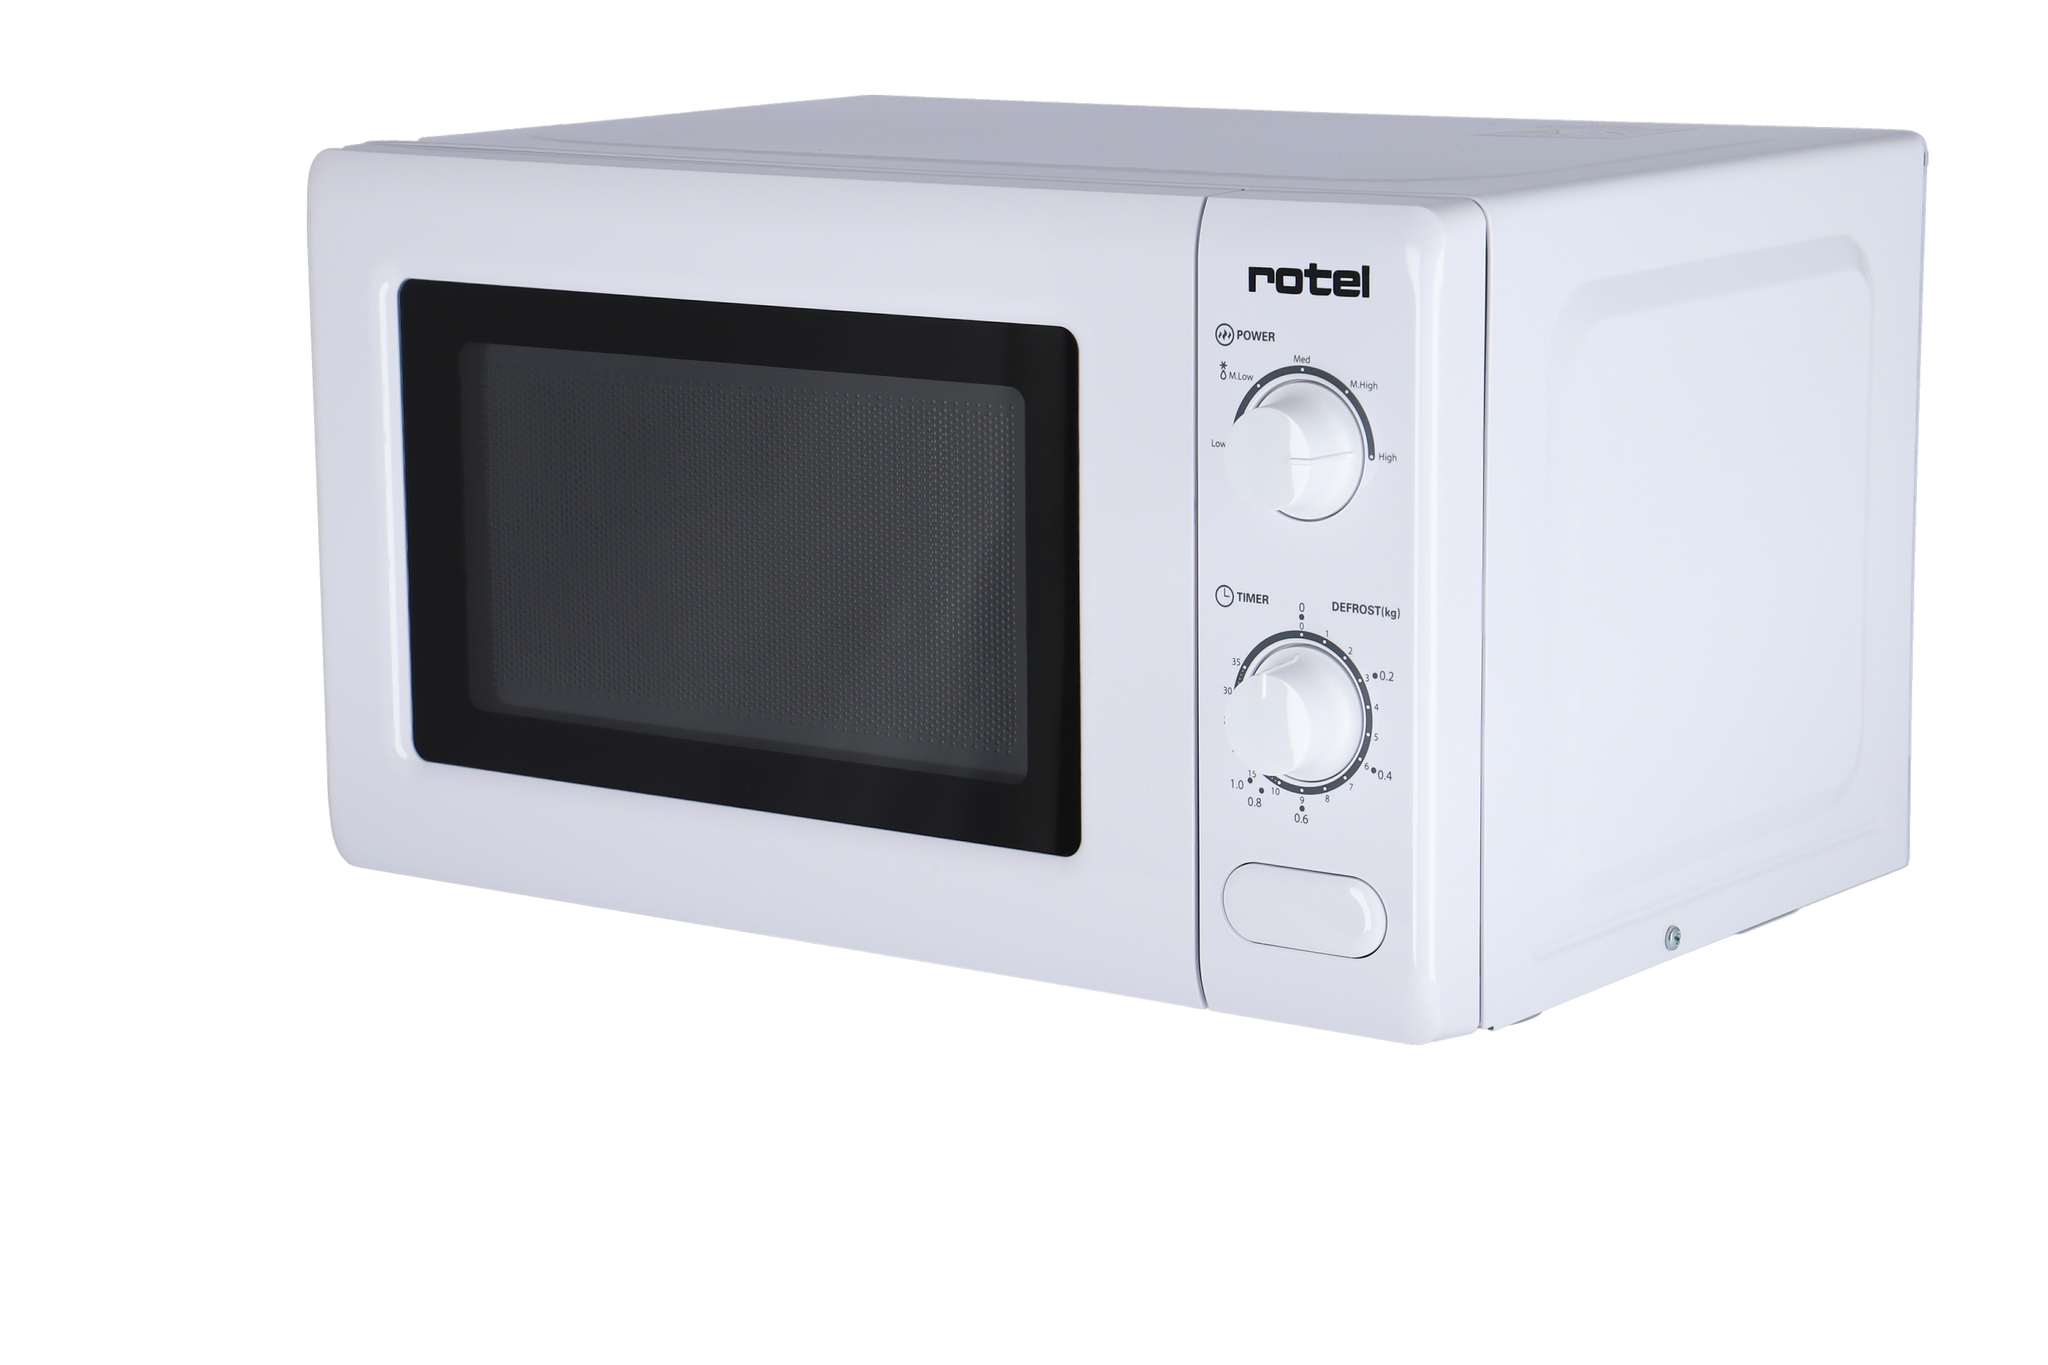 rotel Mikrowelle 20 l